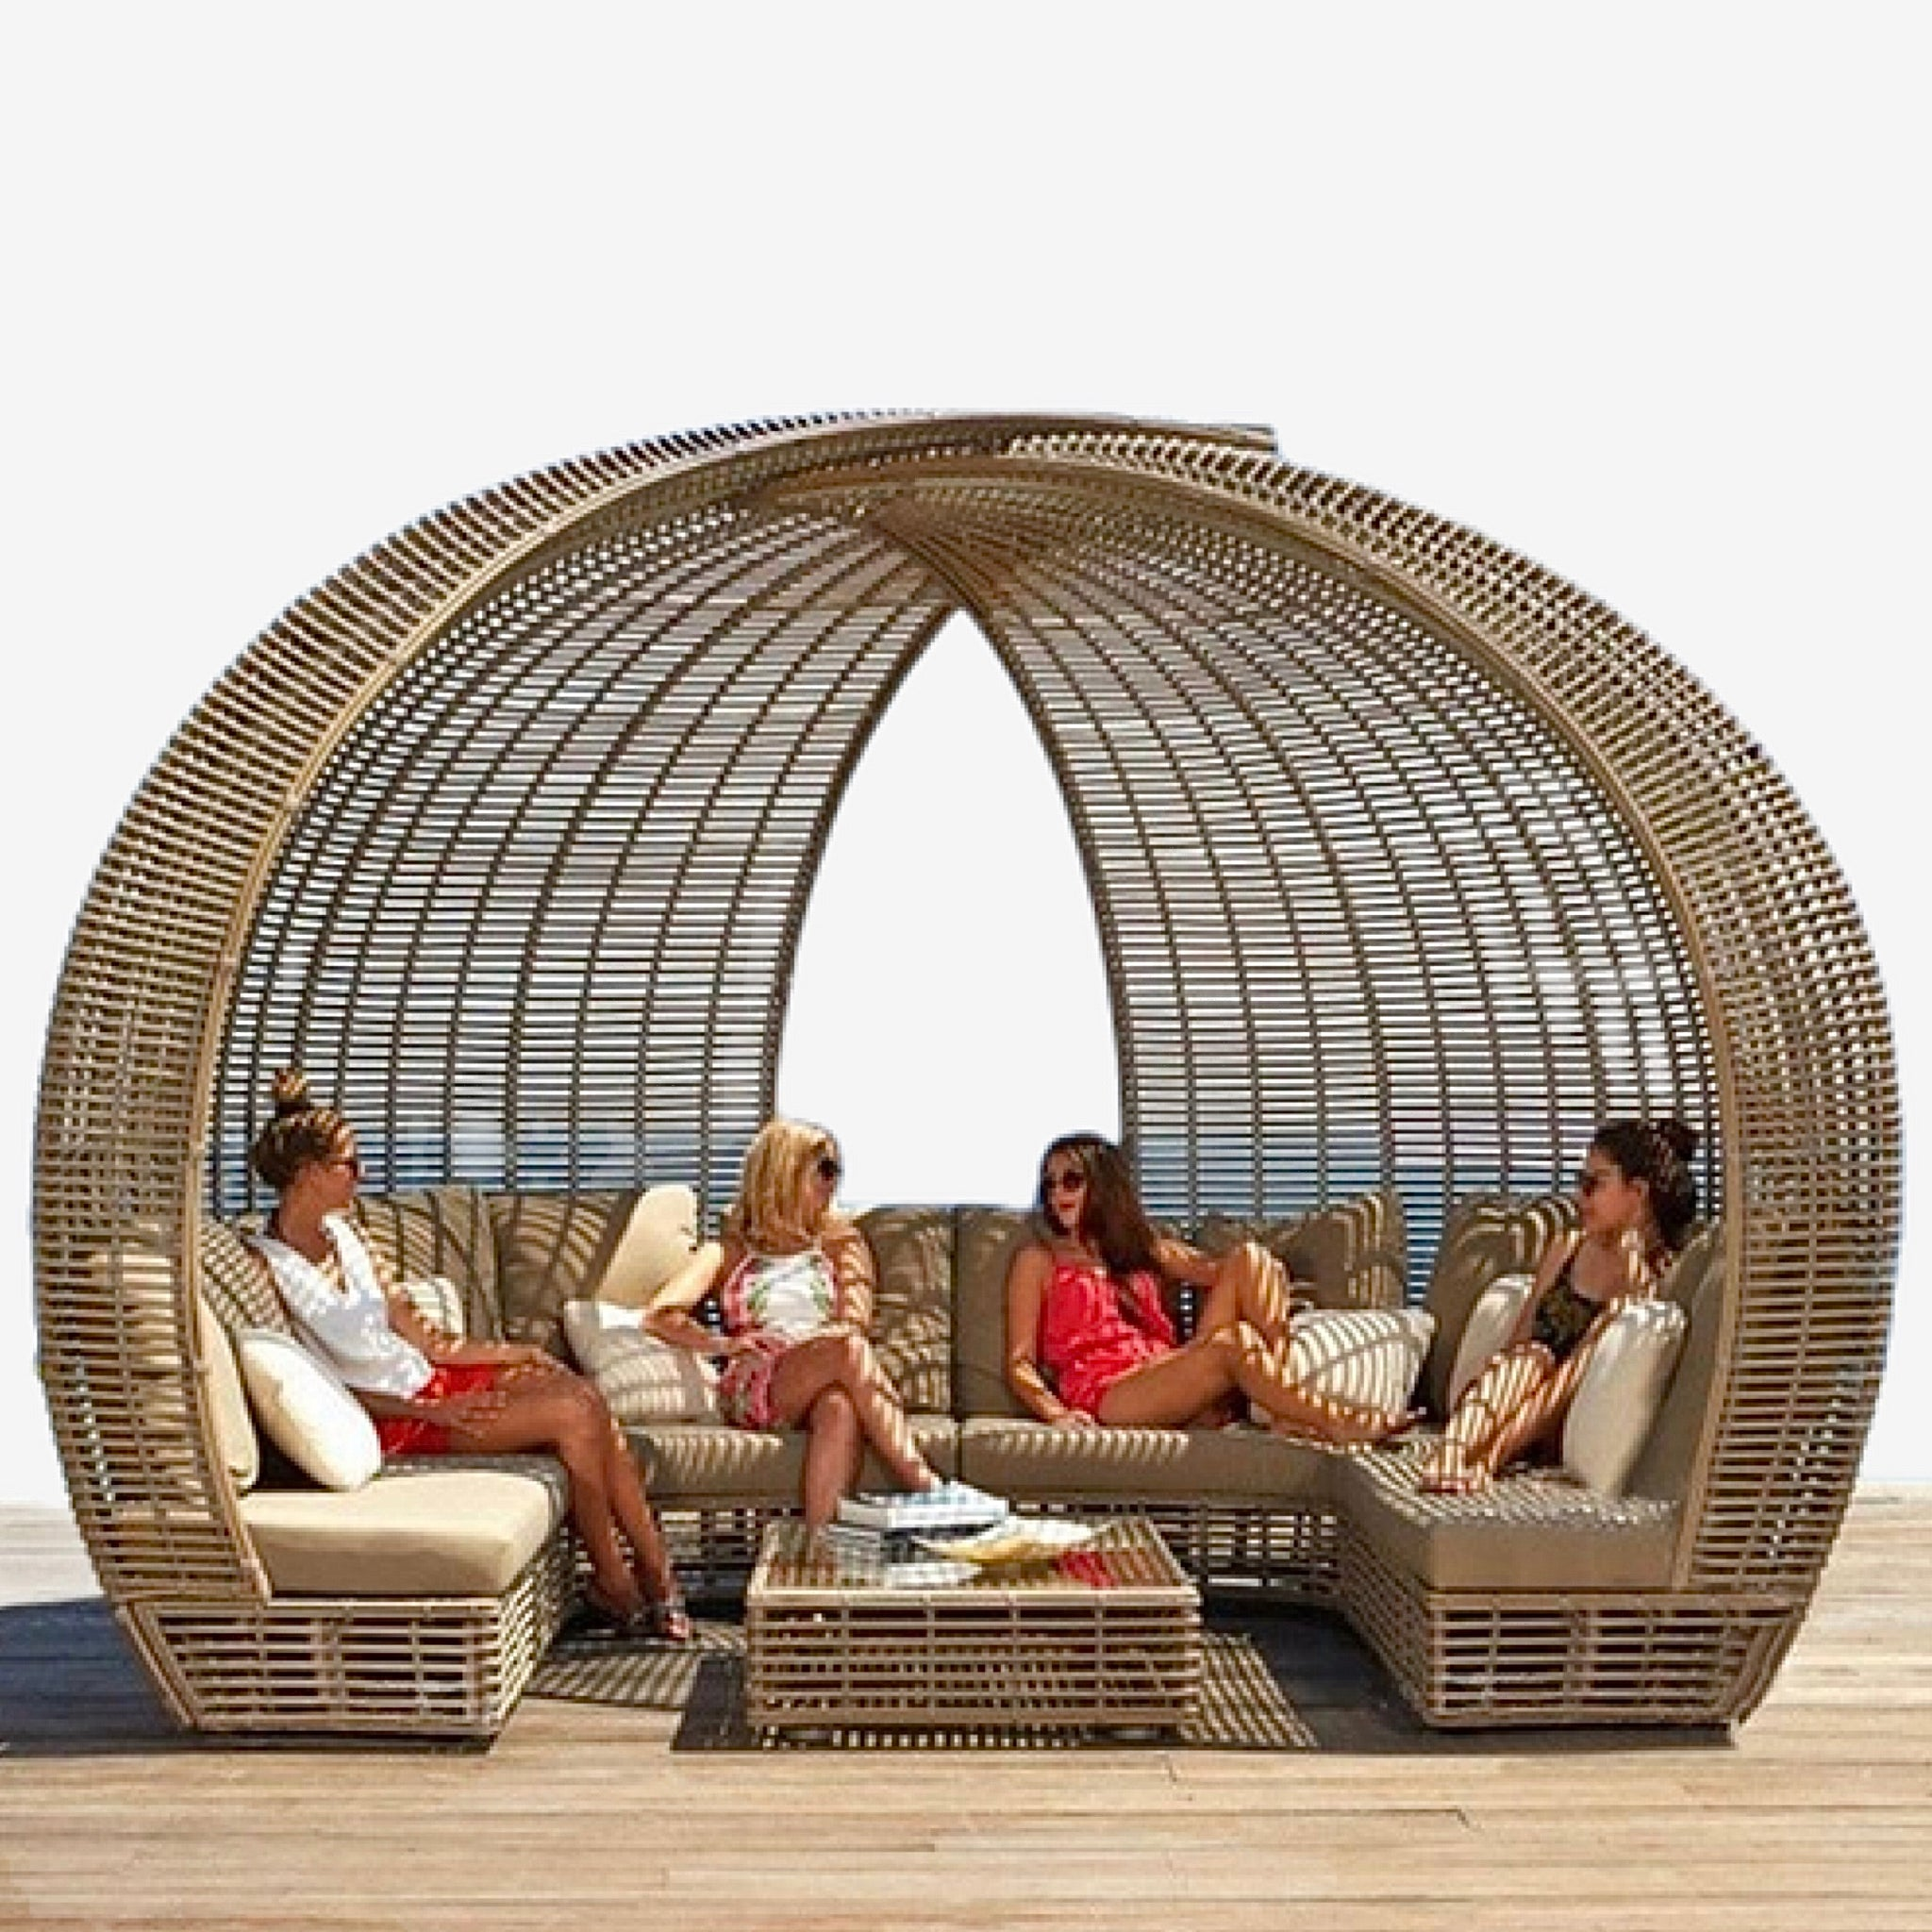 Outdoor Rattan Lounger Set   Sofa Lying Bed Canopy Balcony Villa PE Rattan Chairs Sets Trend